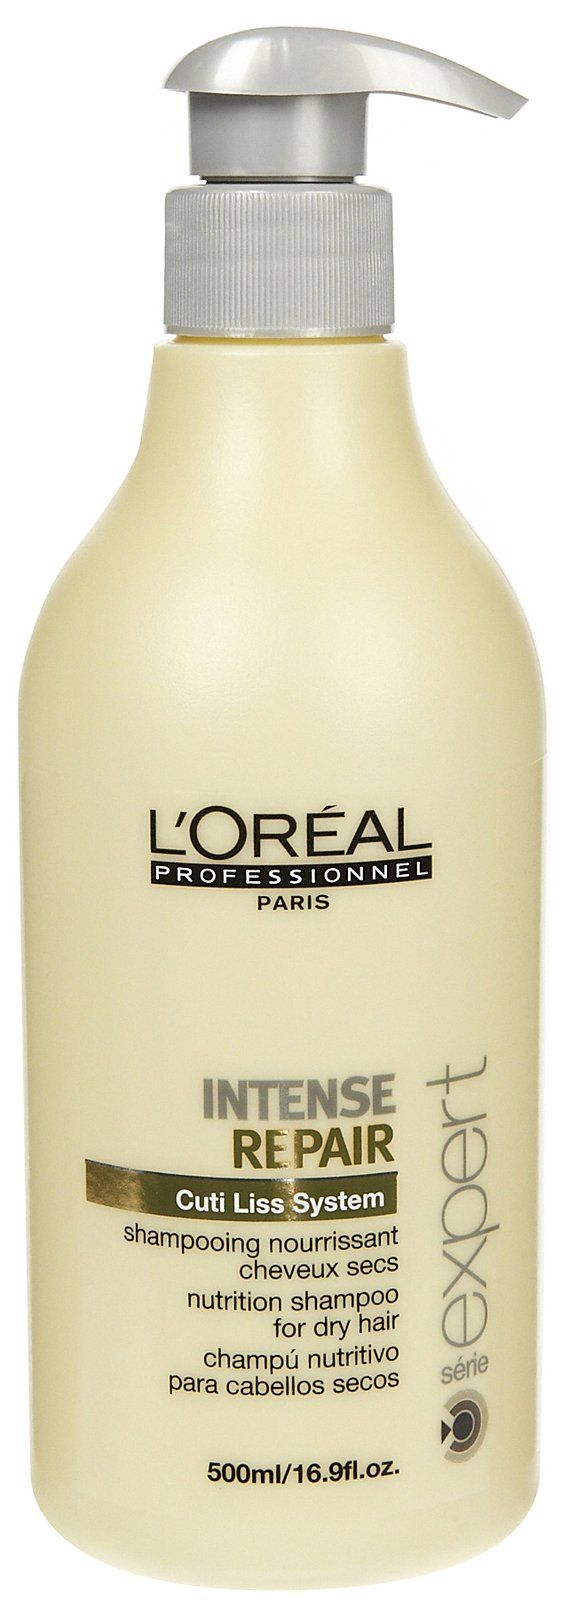 No More Dry And Damaged Hair From A Renowned Shampoo Brand Comes L Loreal Fall Repair Professional Serie Expert Intense Exclusively Formulated To Restore